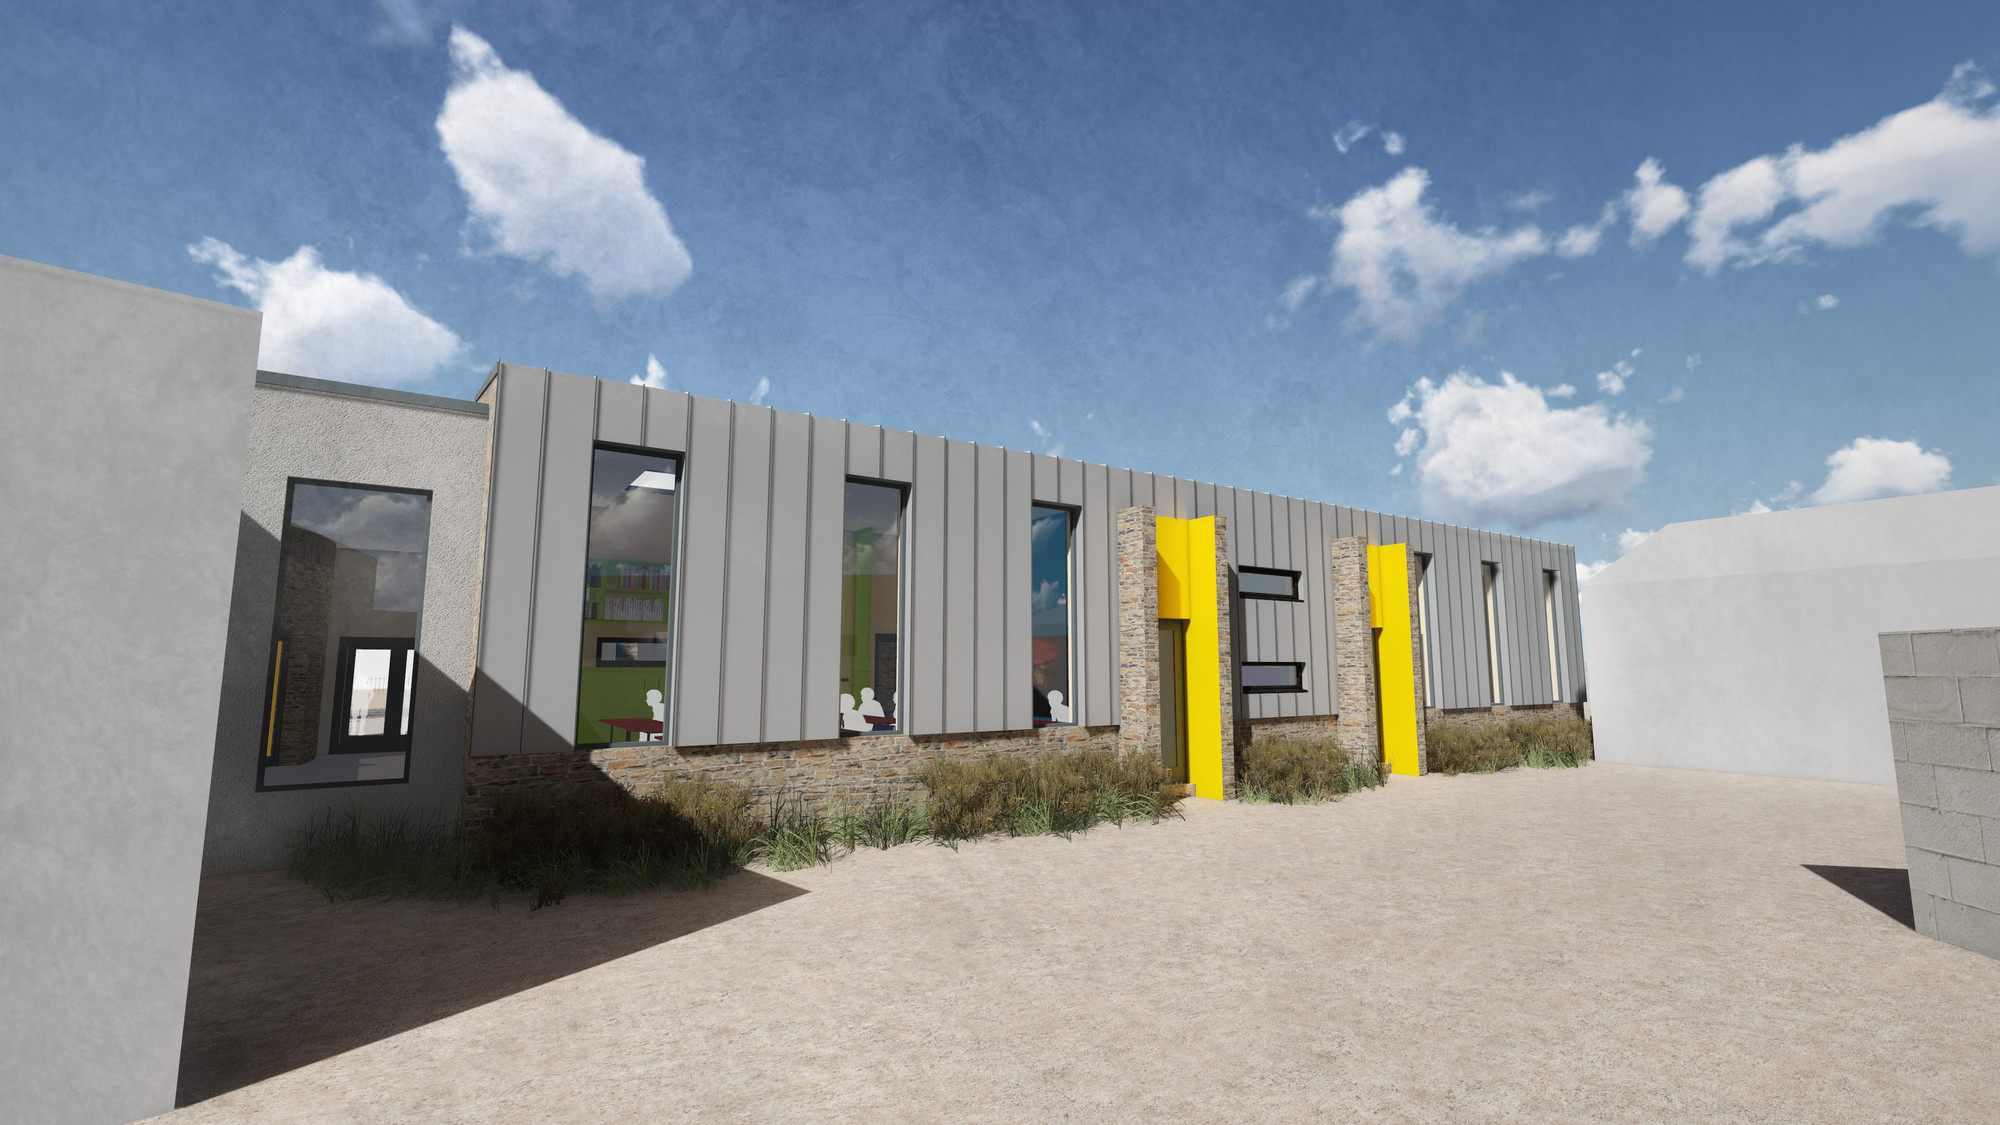 Gallery of PLACE By Design Wins Cool School Design Competition - 4